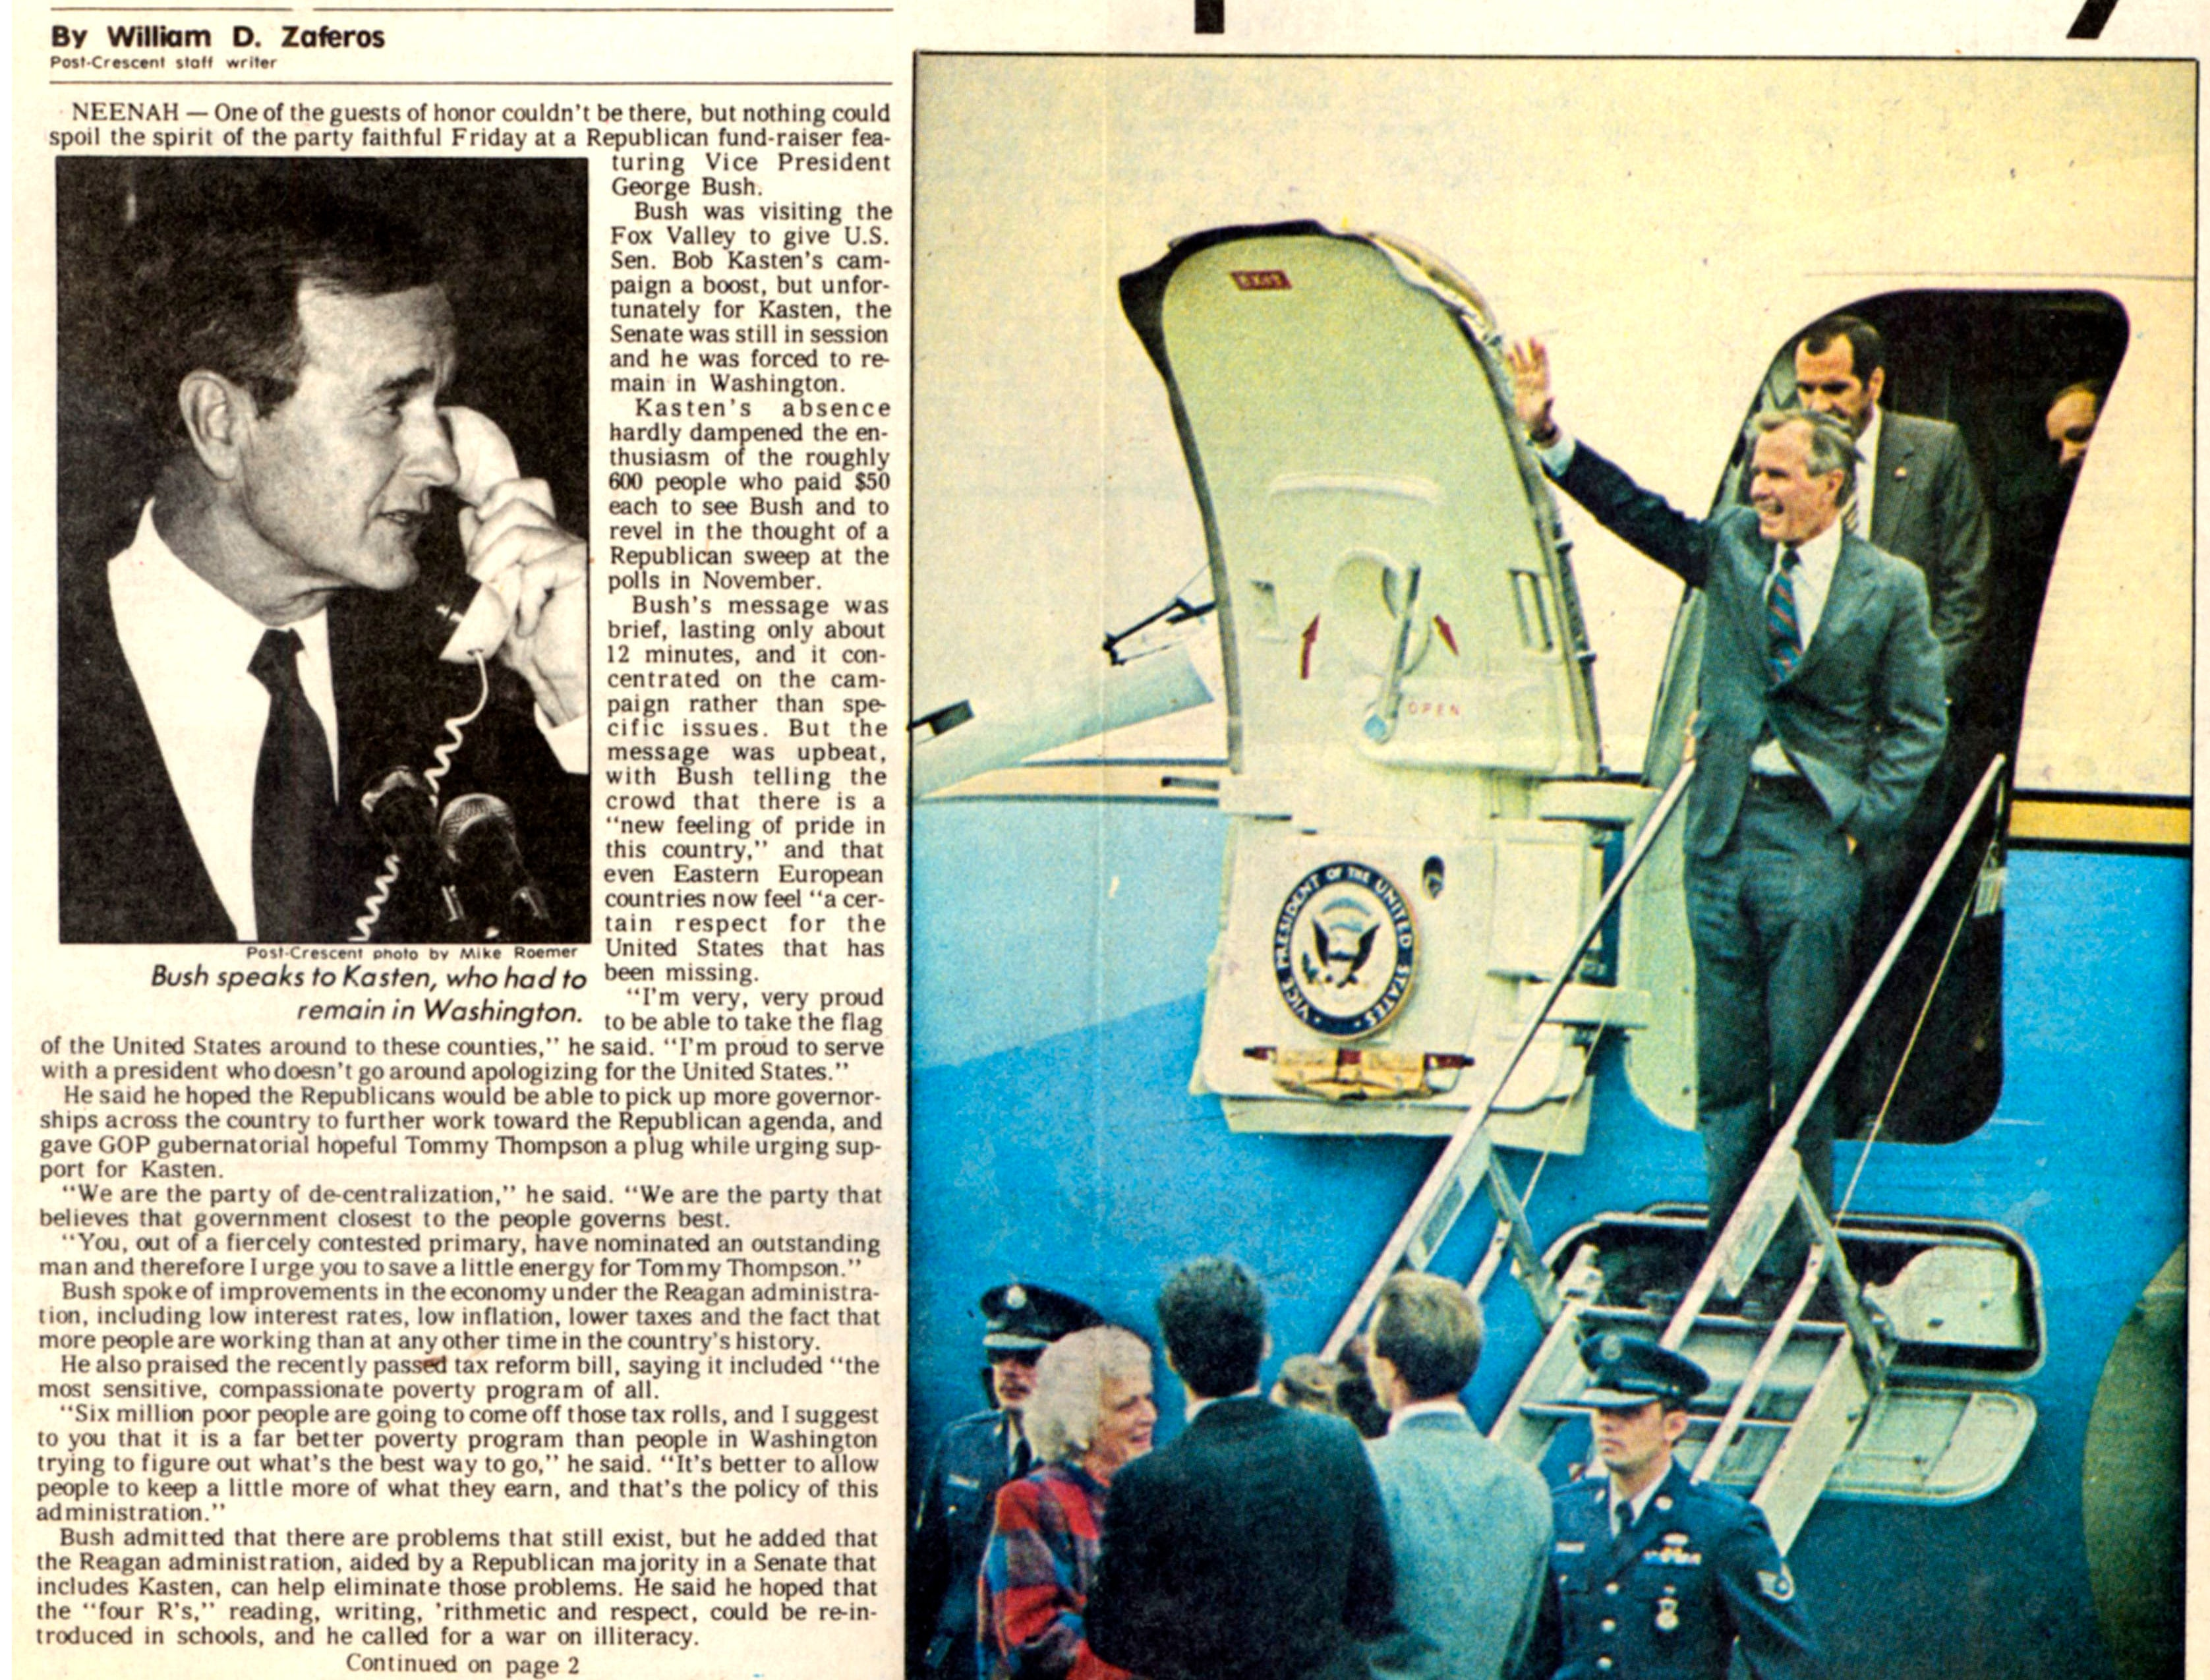 Sept. 20, 1986. Vice President George H. W. Bush stumps Valley article by William D. Zaferos in The Post-Crescent.